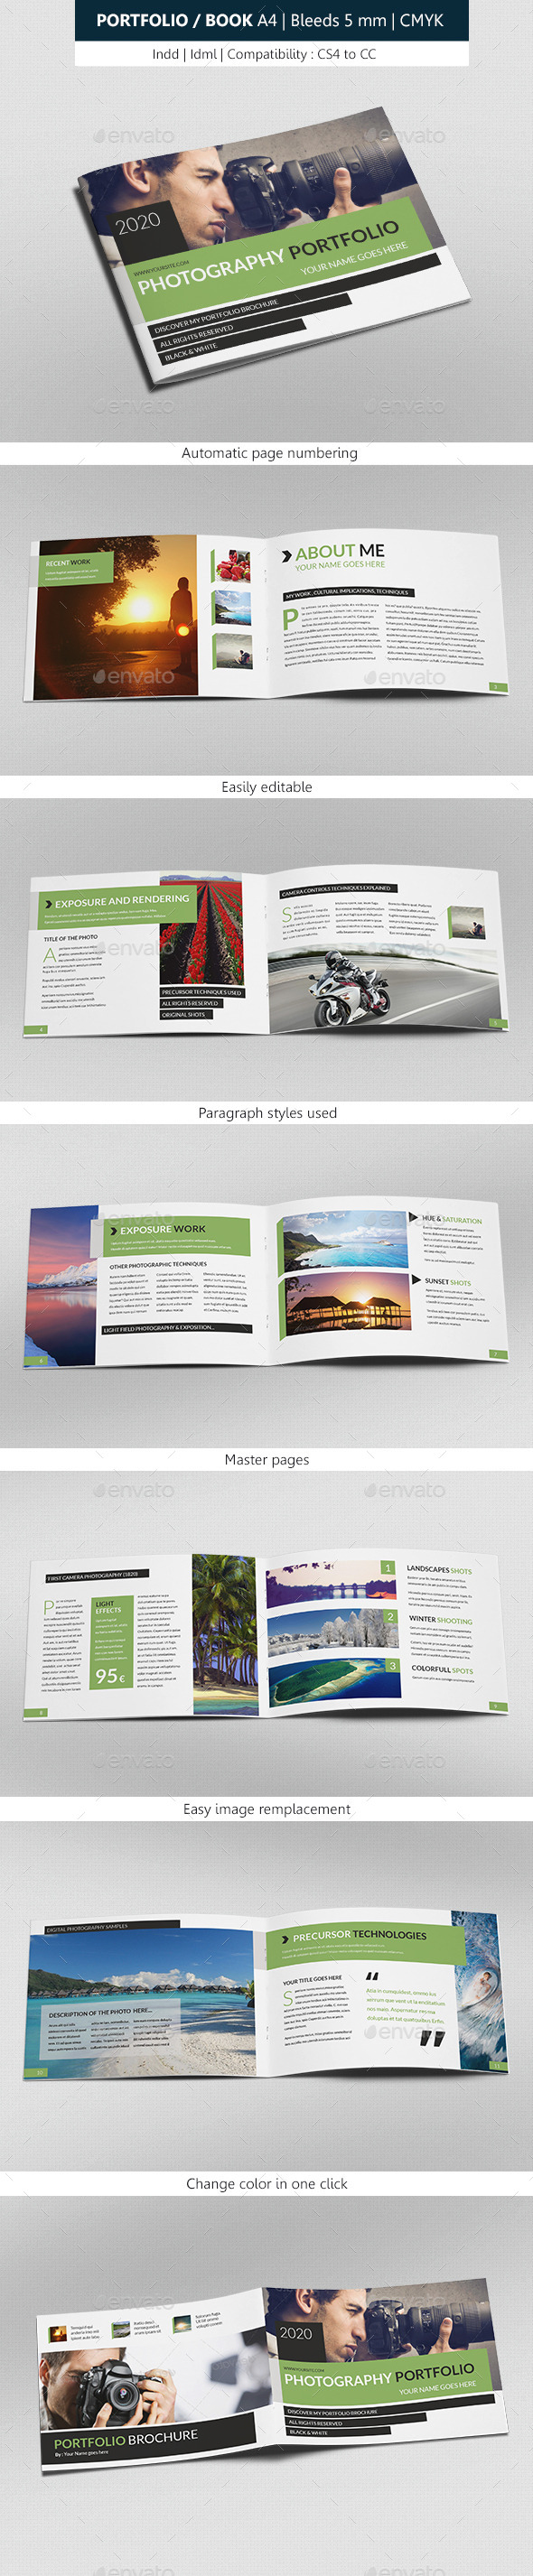 GraphicRiver Portfolio & Book Photograph Indesign Template 8958968